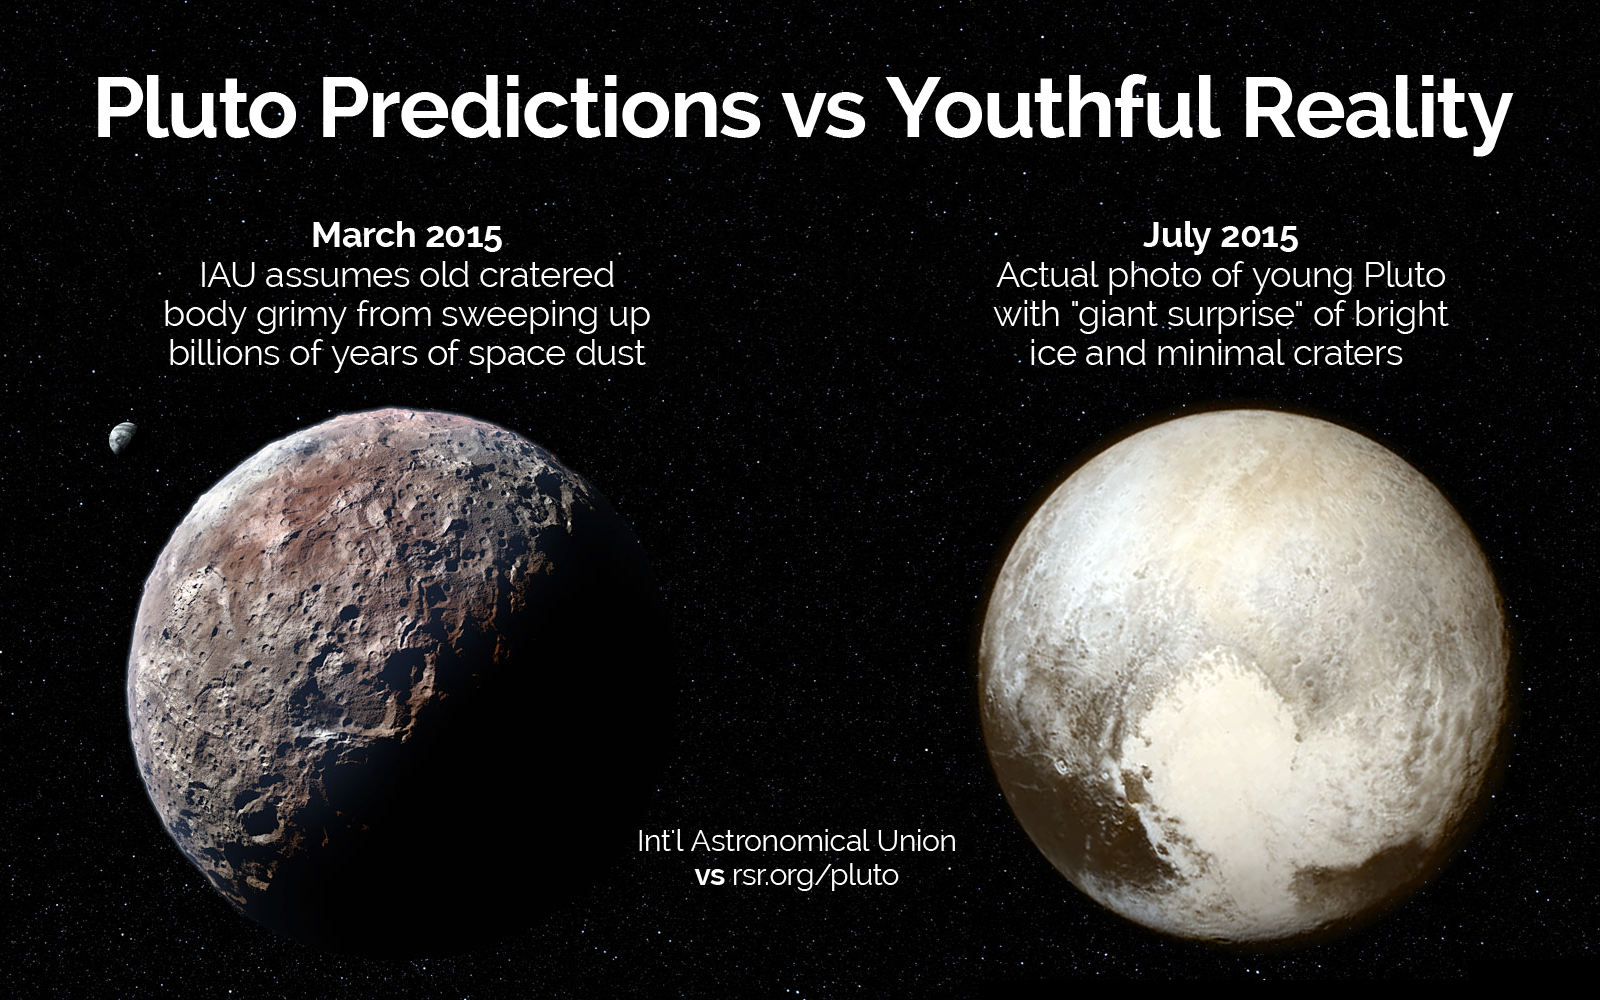 Pluto appearance prediction from old-earth assumption vs. young-earth actual photos